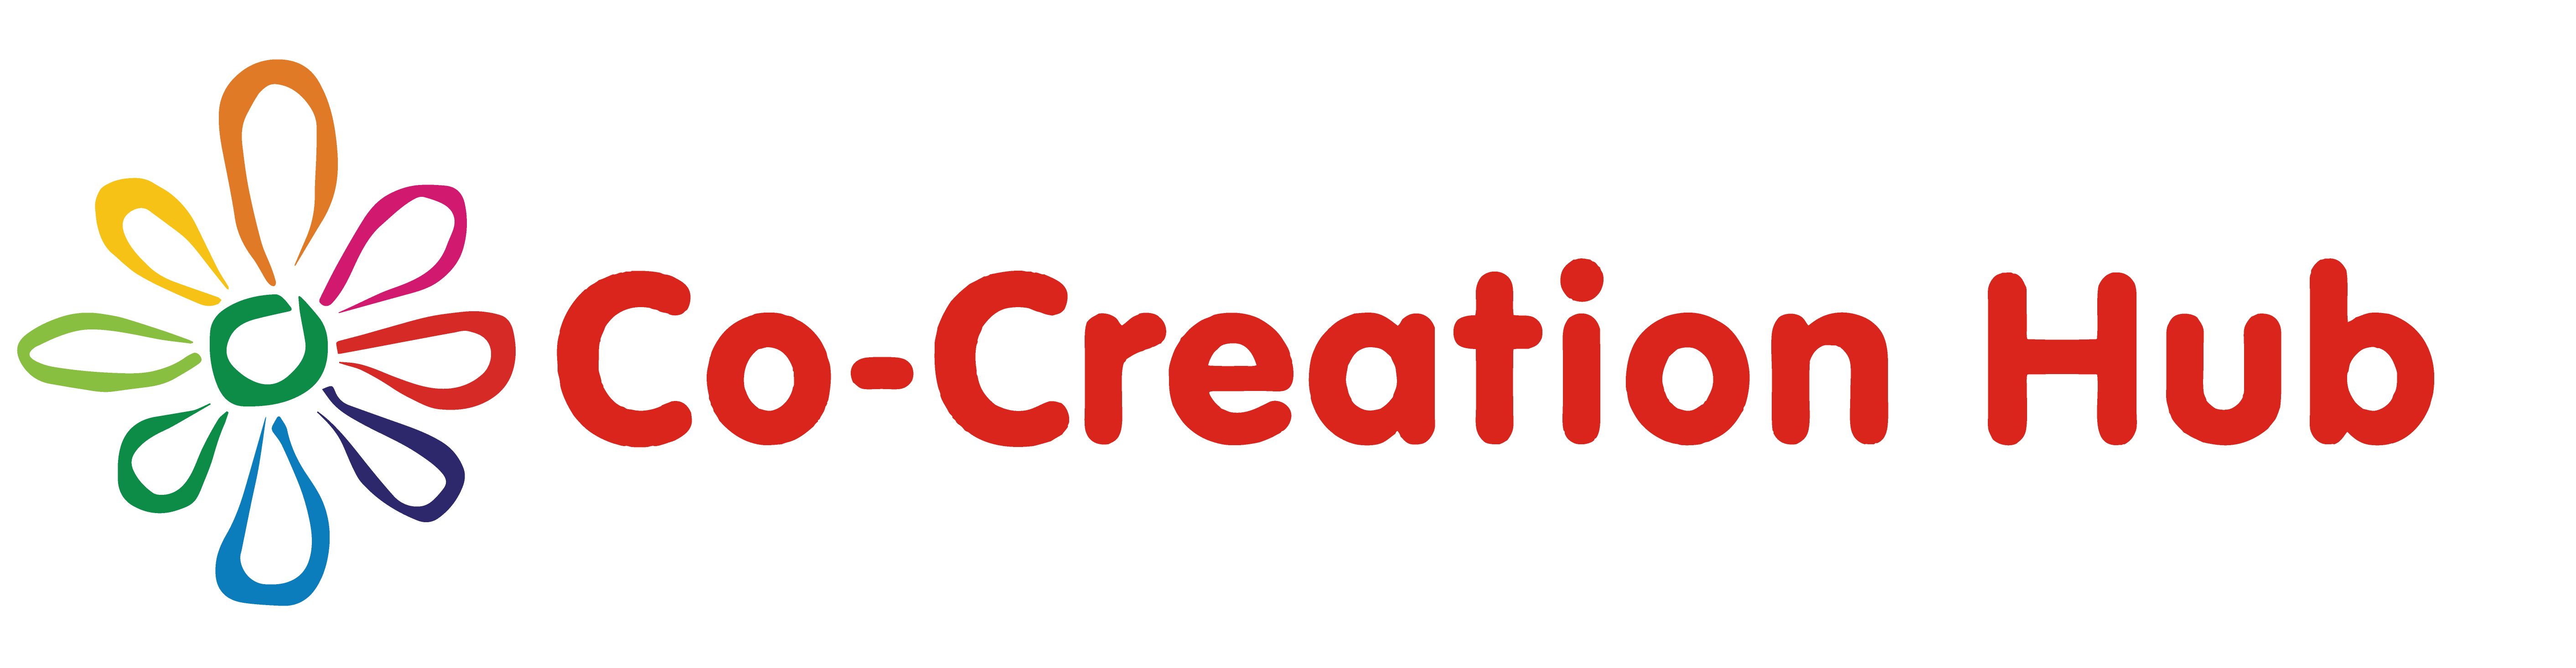 Co-Creation Hub Image